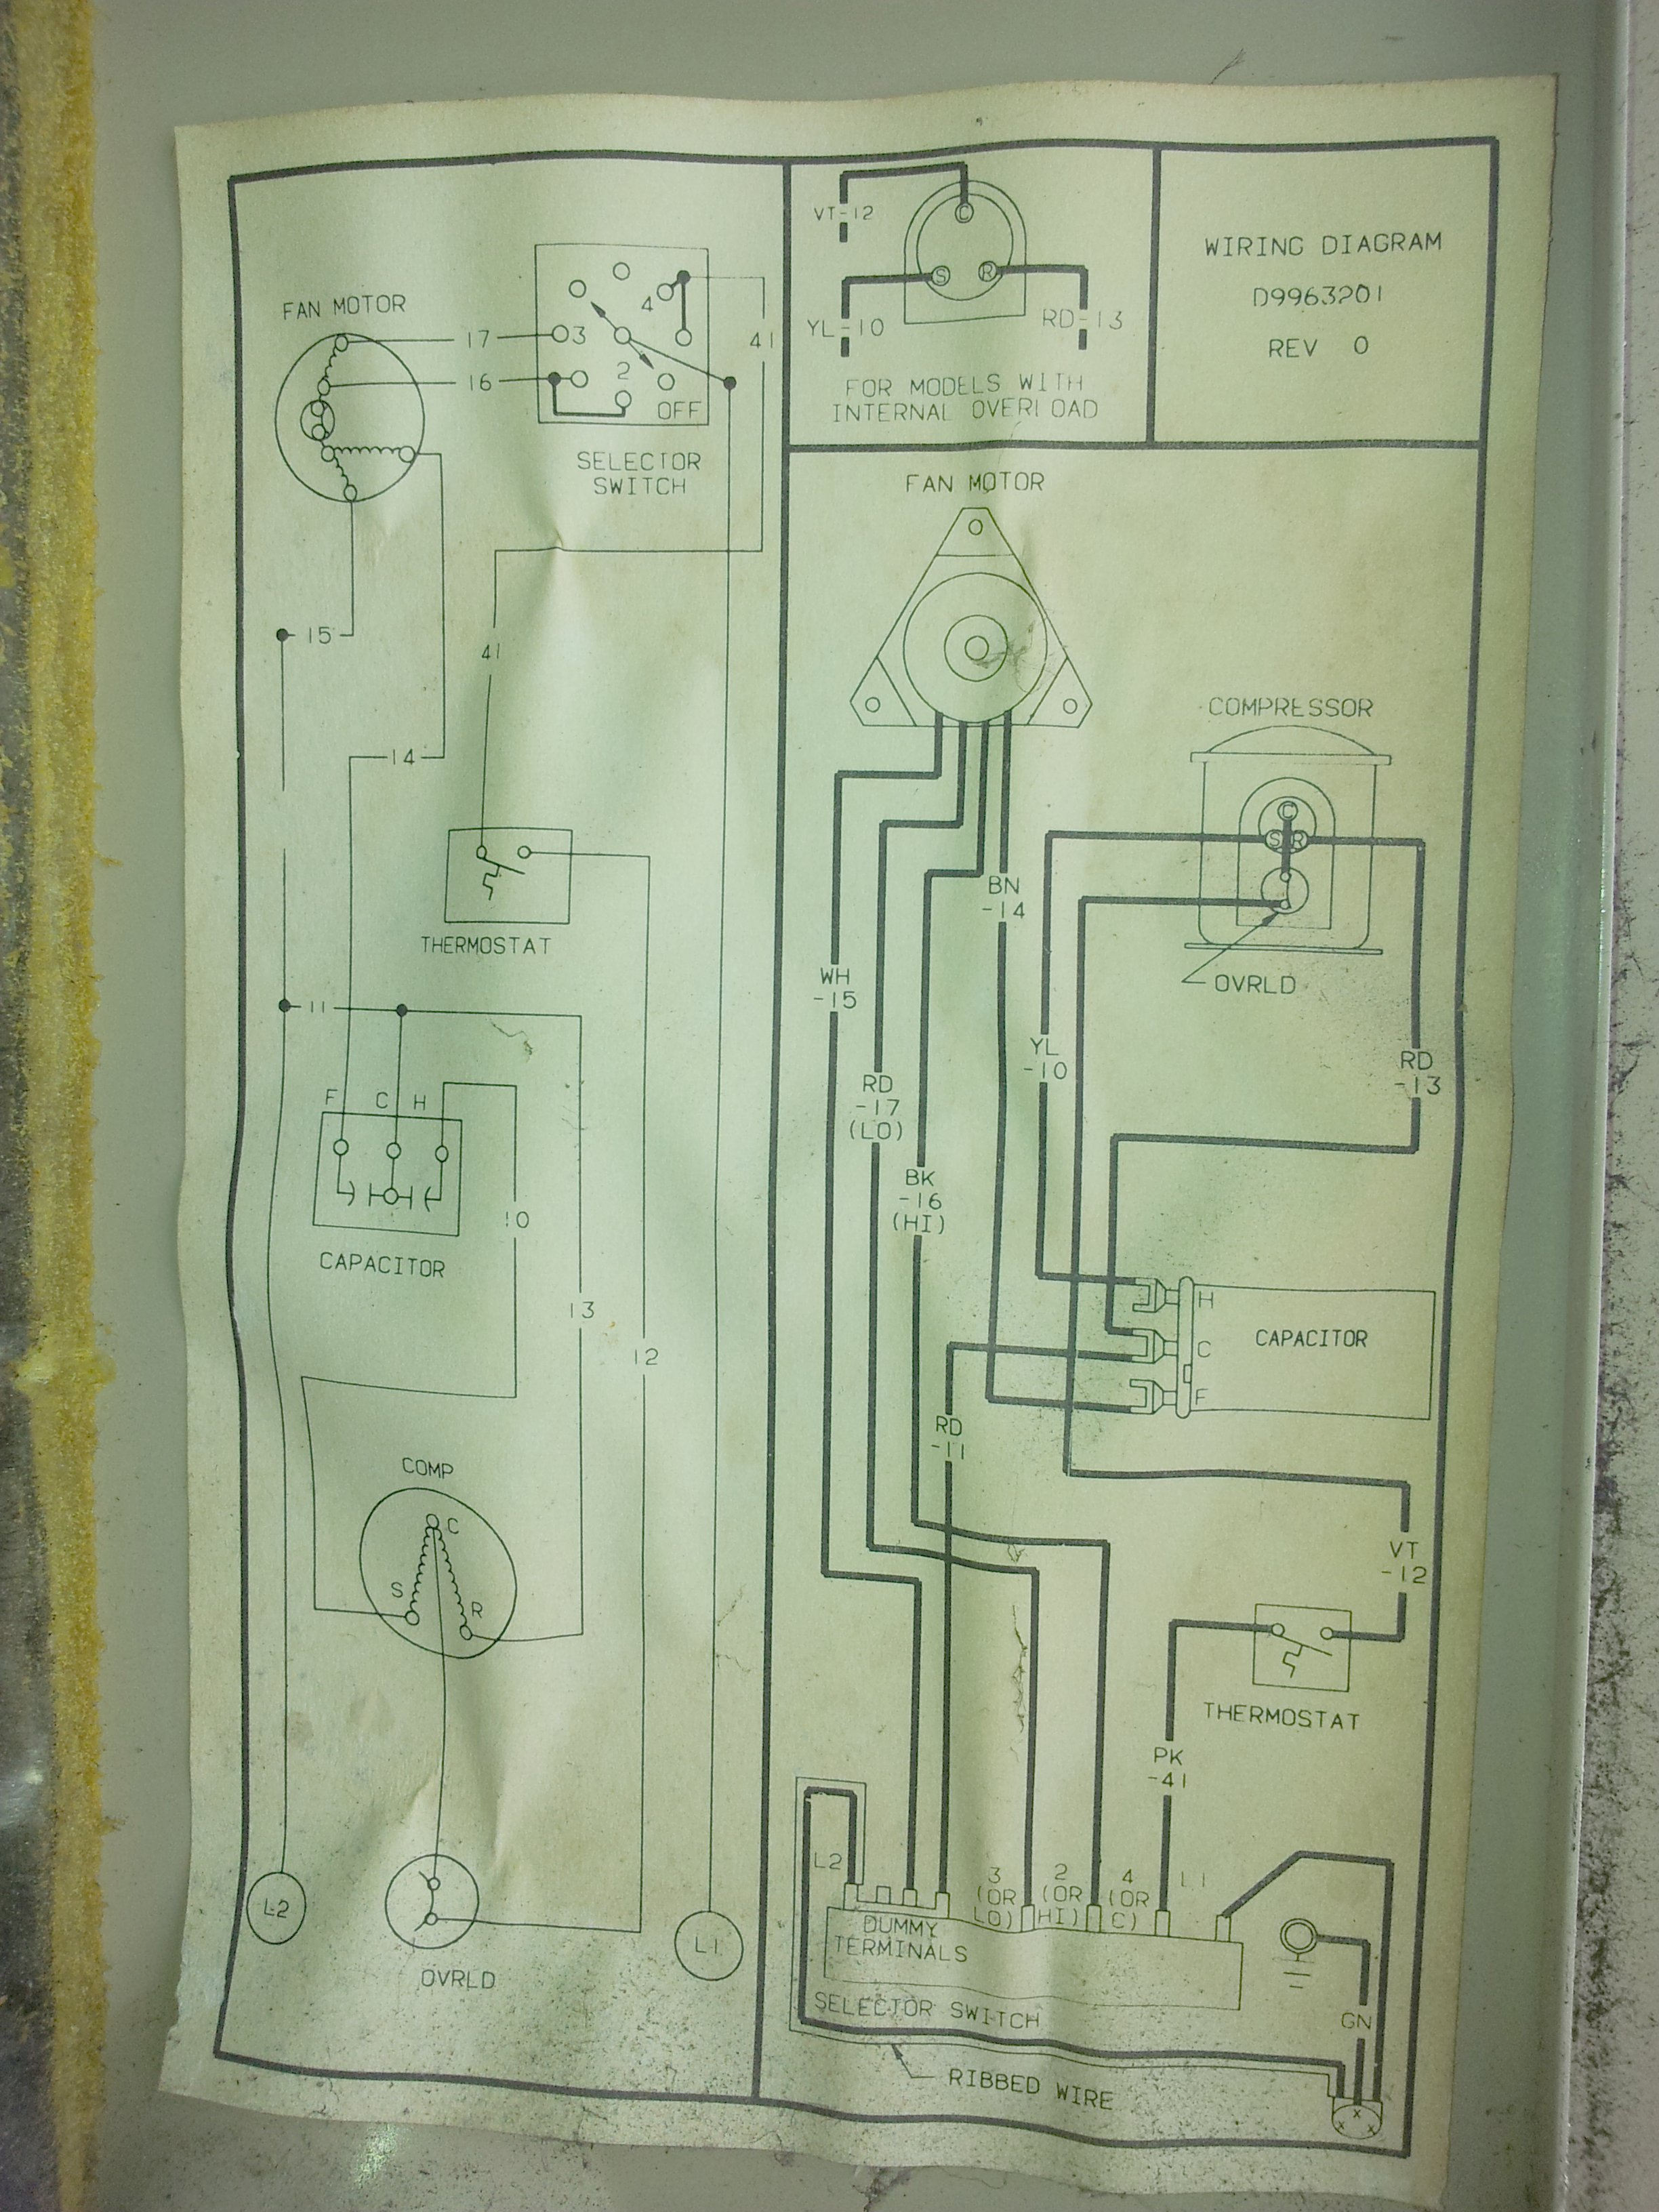 1987 Amana Air Conditioner Es122mr A Marketplace Of Ideas Handler Wiring Diagrams This Unit Must Weigh At Least 80 Pounds And Thus For Second Story Window Mounting Support Some Sort Is Required I Built The Deck You See In